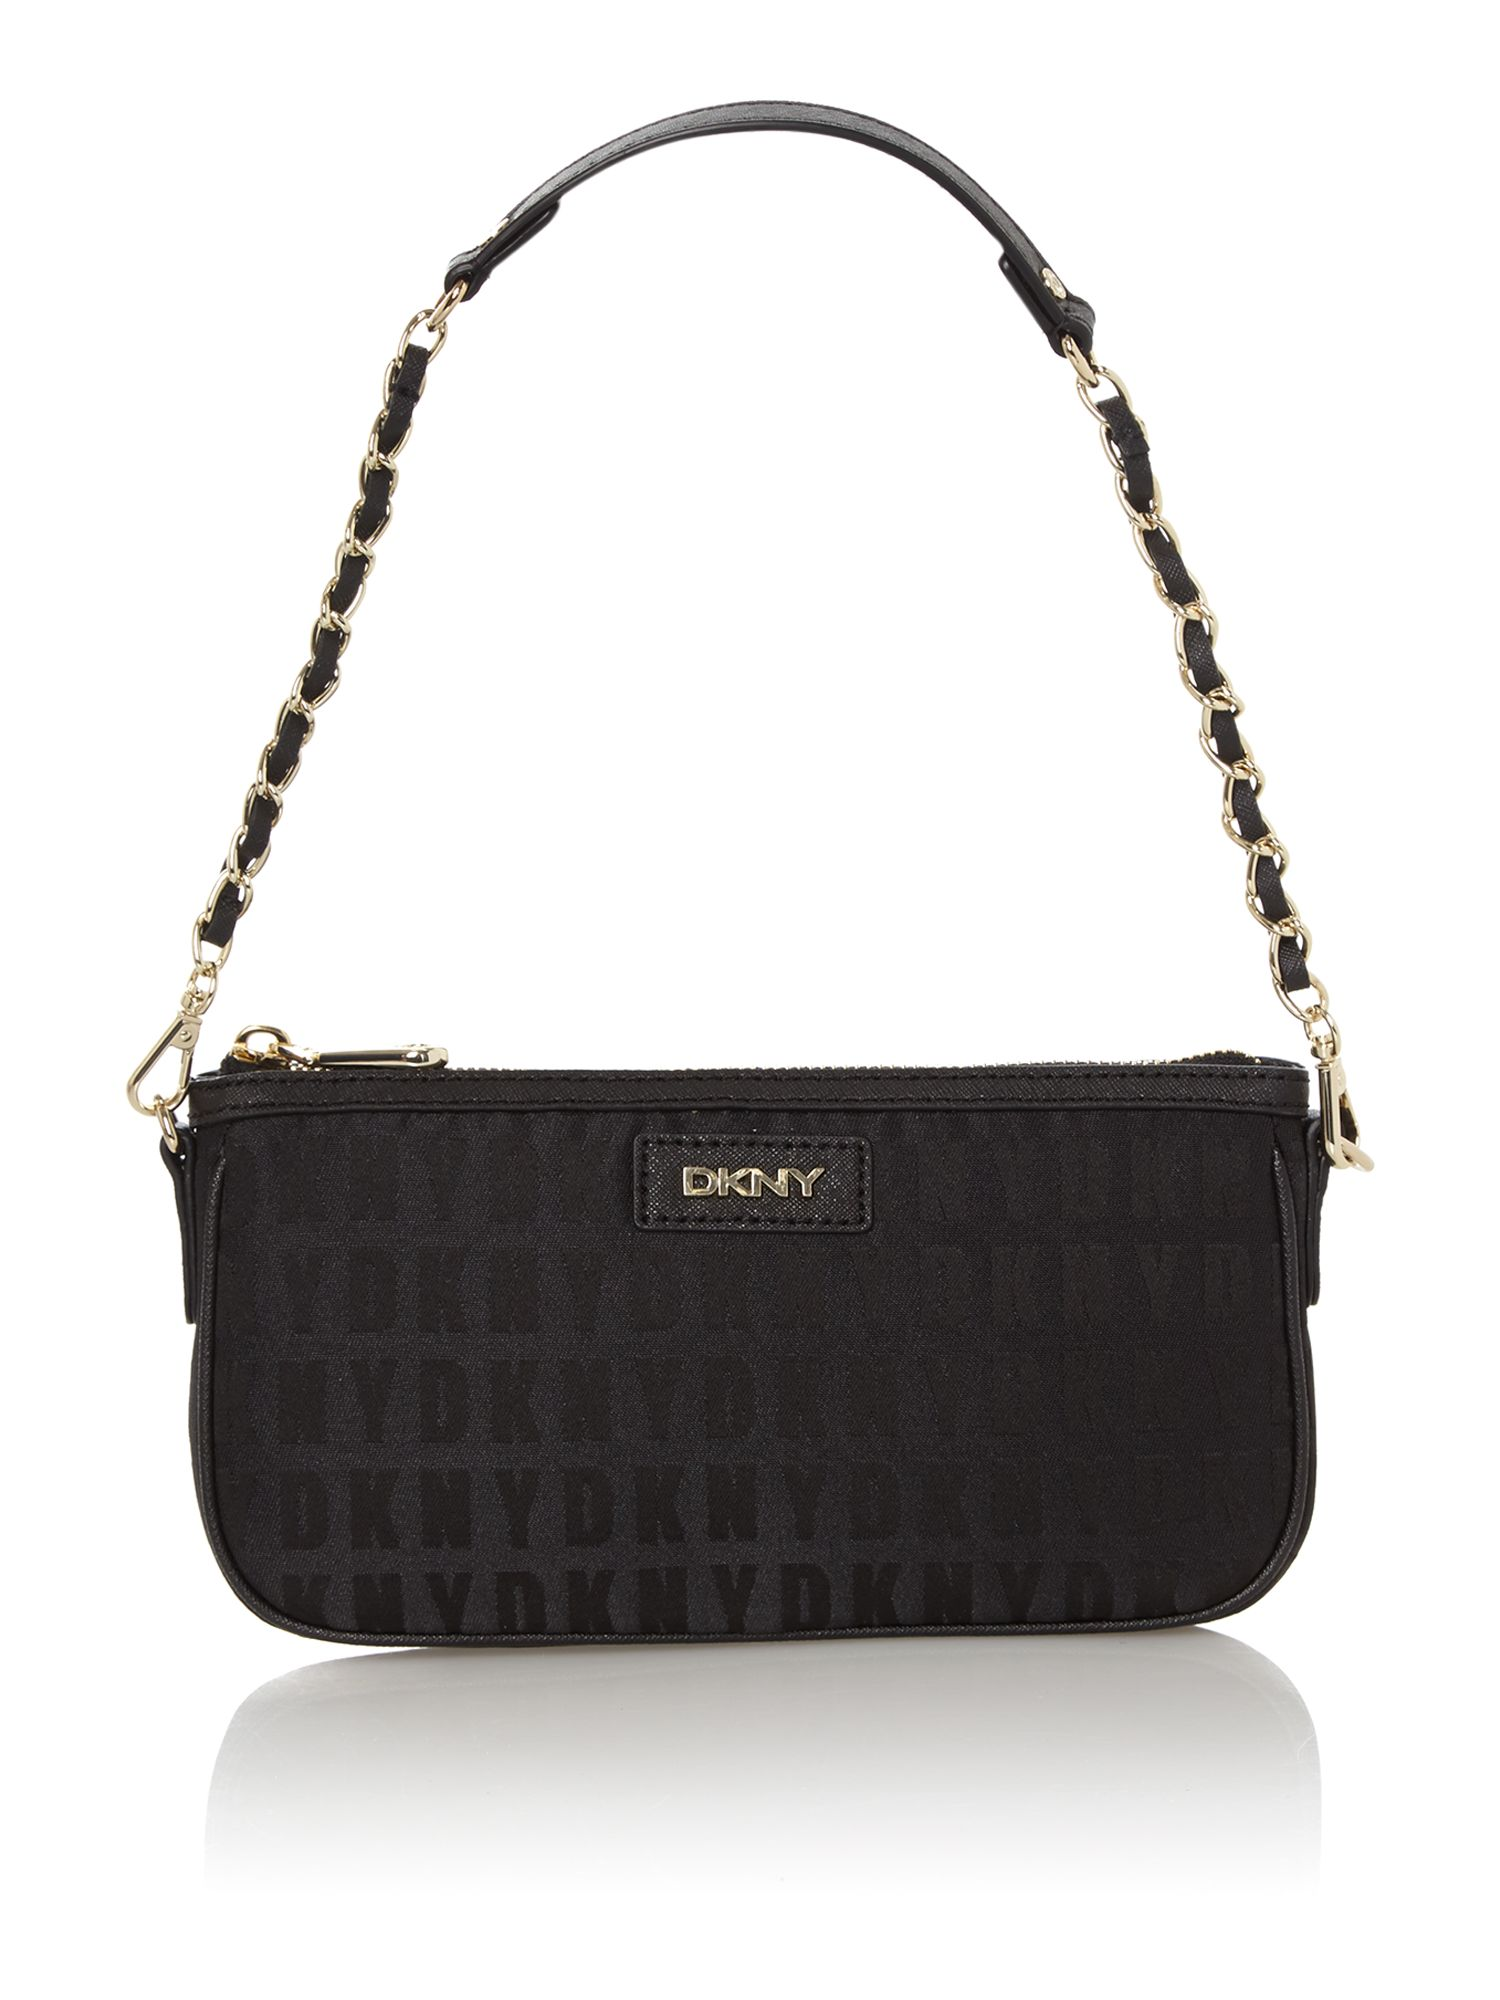 Black small chain shoulder bag